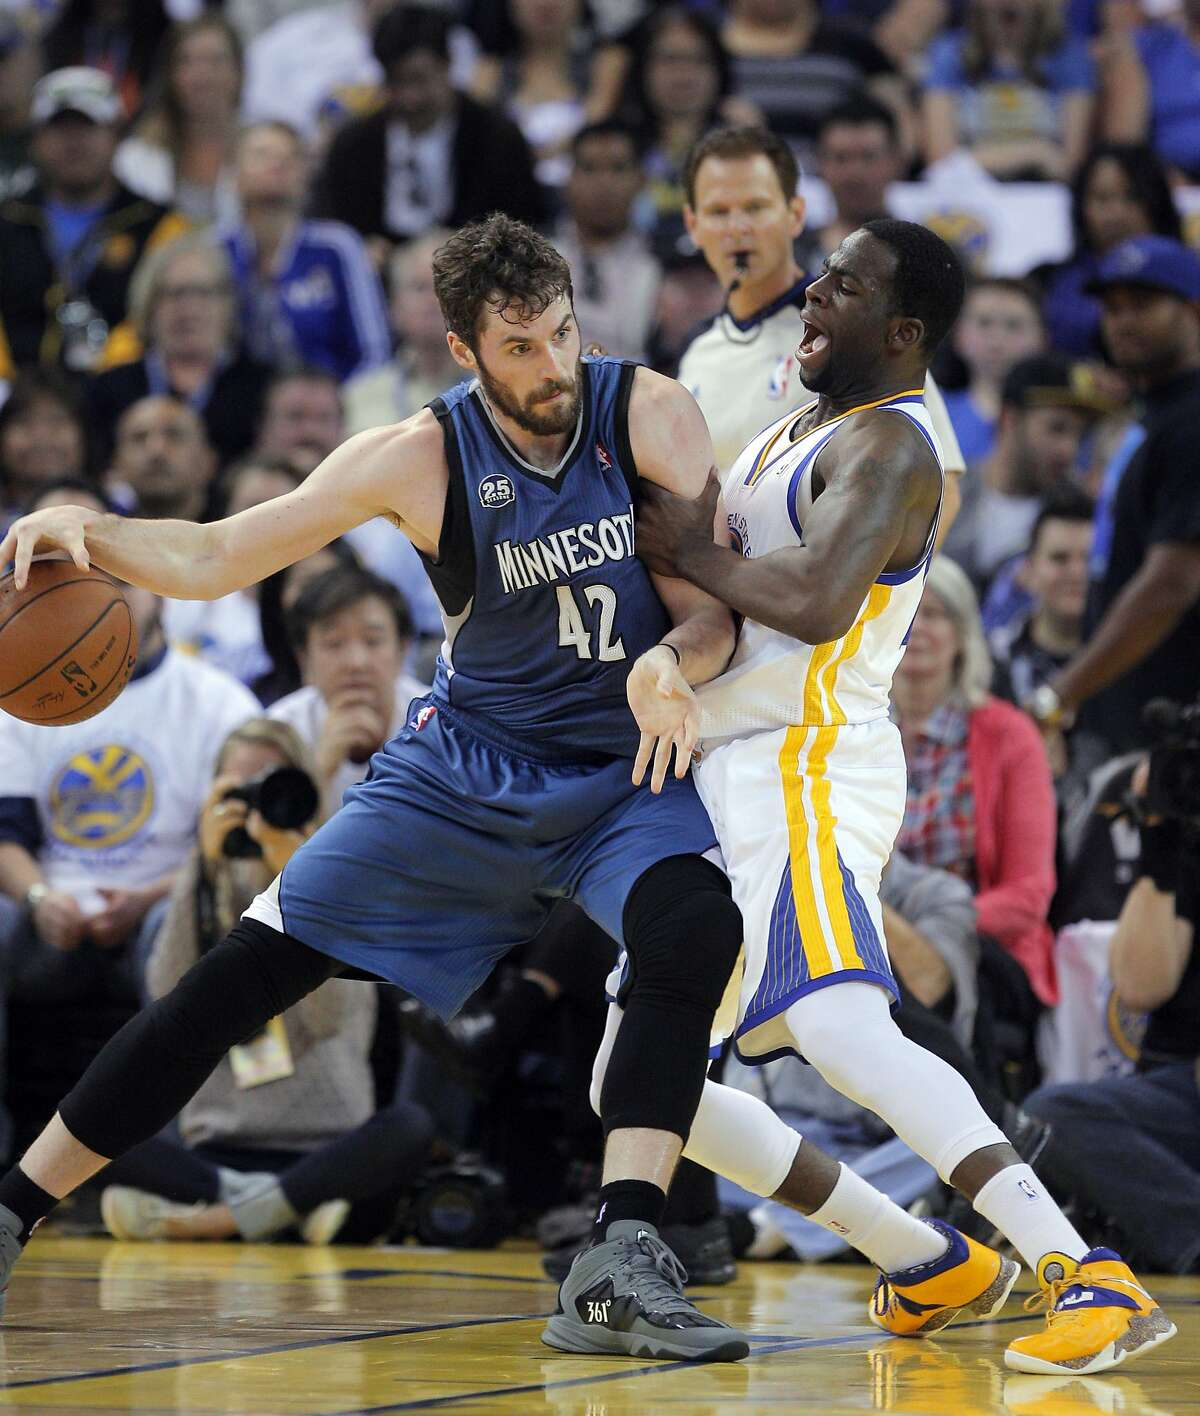 Kevin Love (42) drives to the basket against Draymond Green (23) in the first half. The Golden State Warriors played the Minnesota Timberwolves at Oracle Arena in Oakland, Calif., on Monday, April 14, 2014.